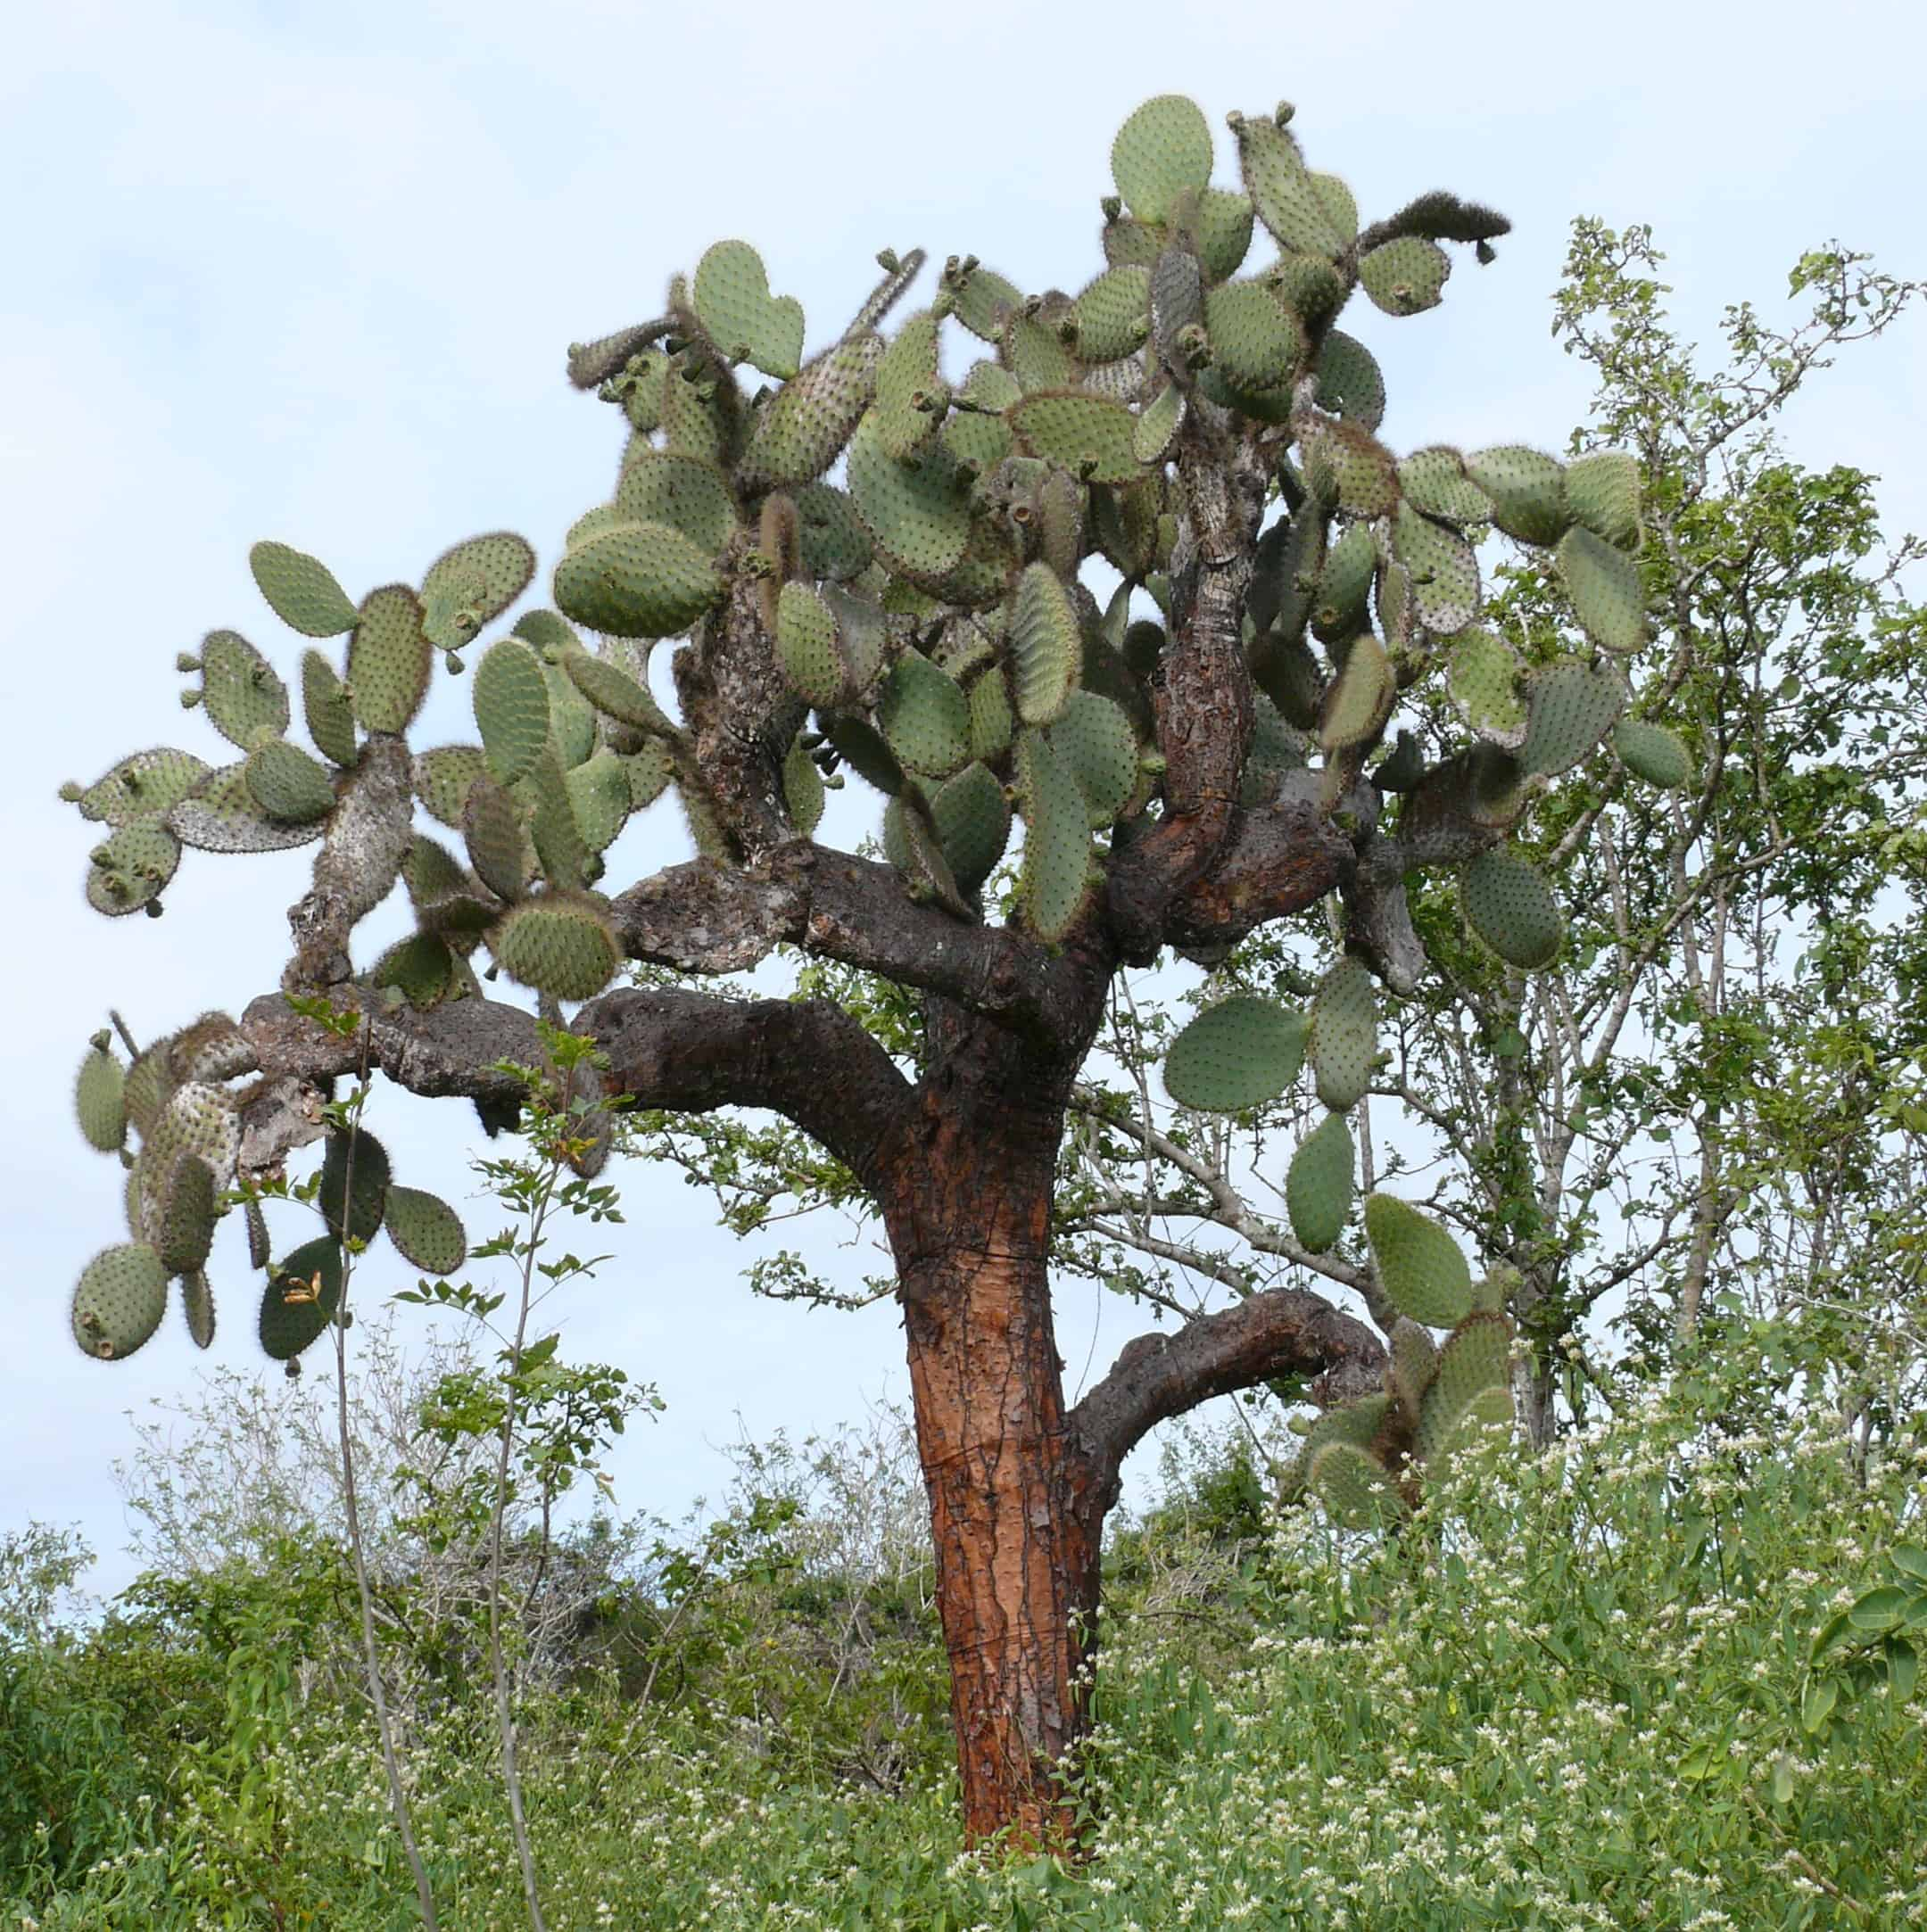 opuntia cactus in galapagos islands